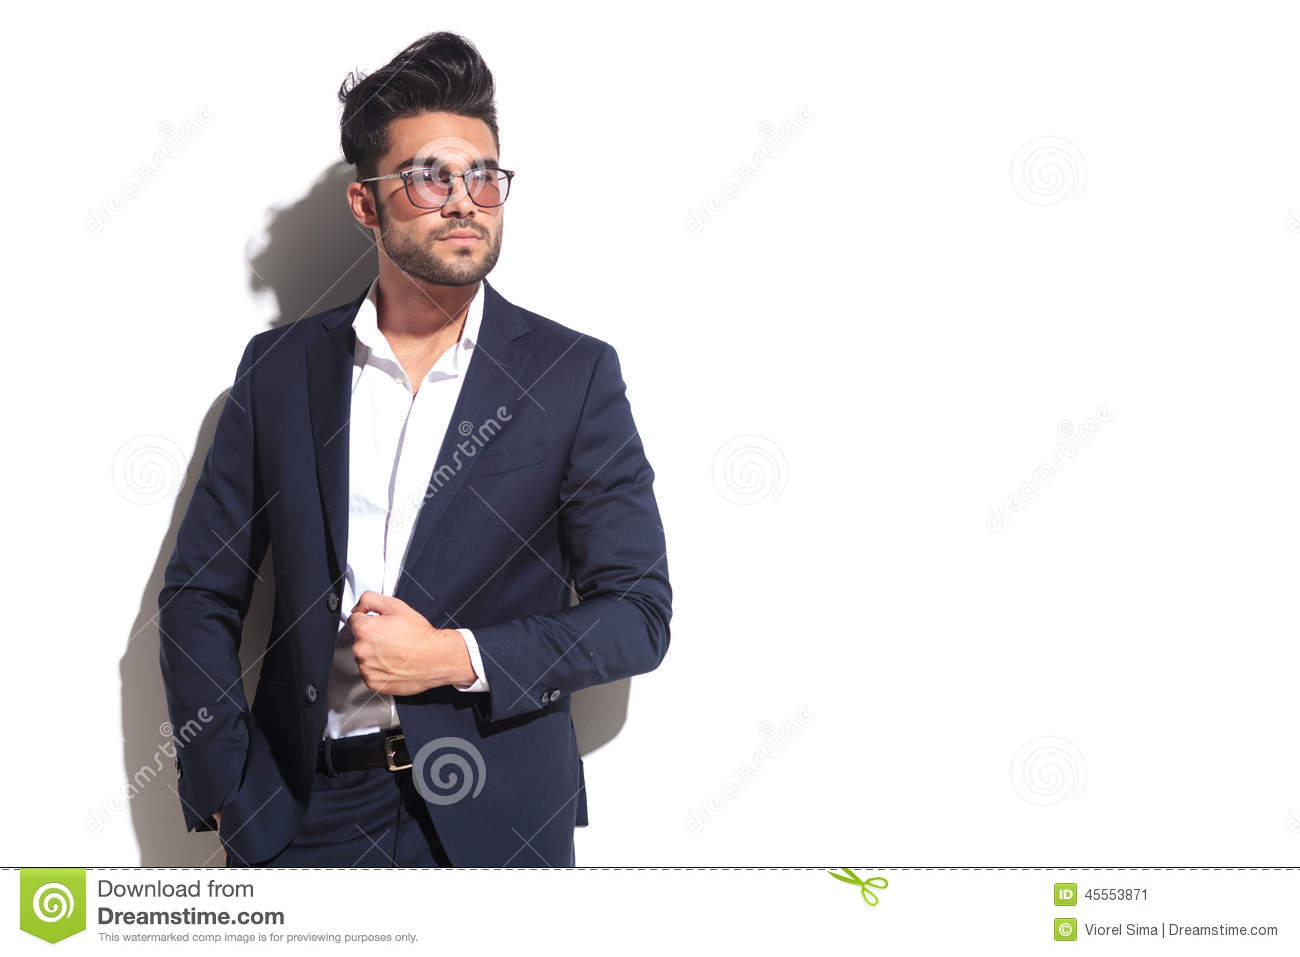 cool-business-man-wearing-sunglasses-pul